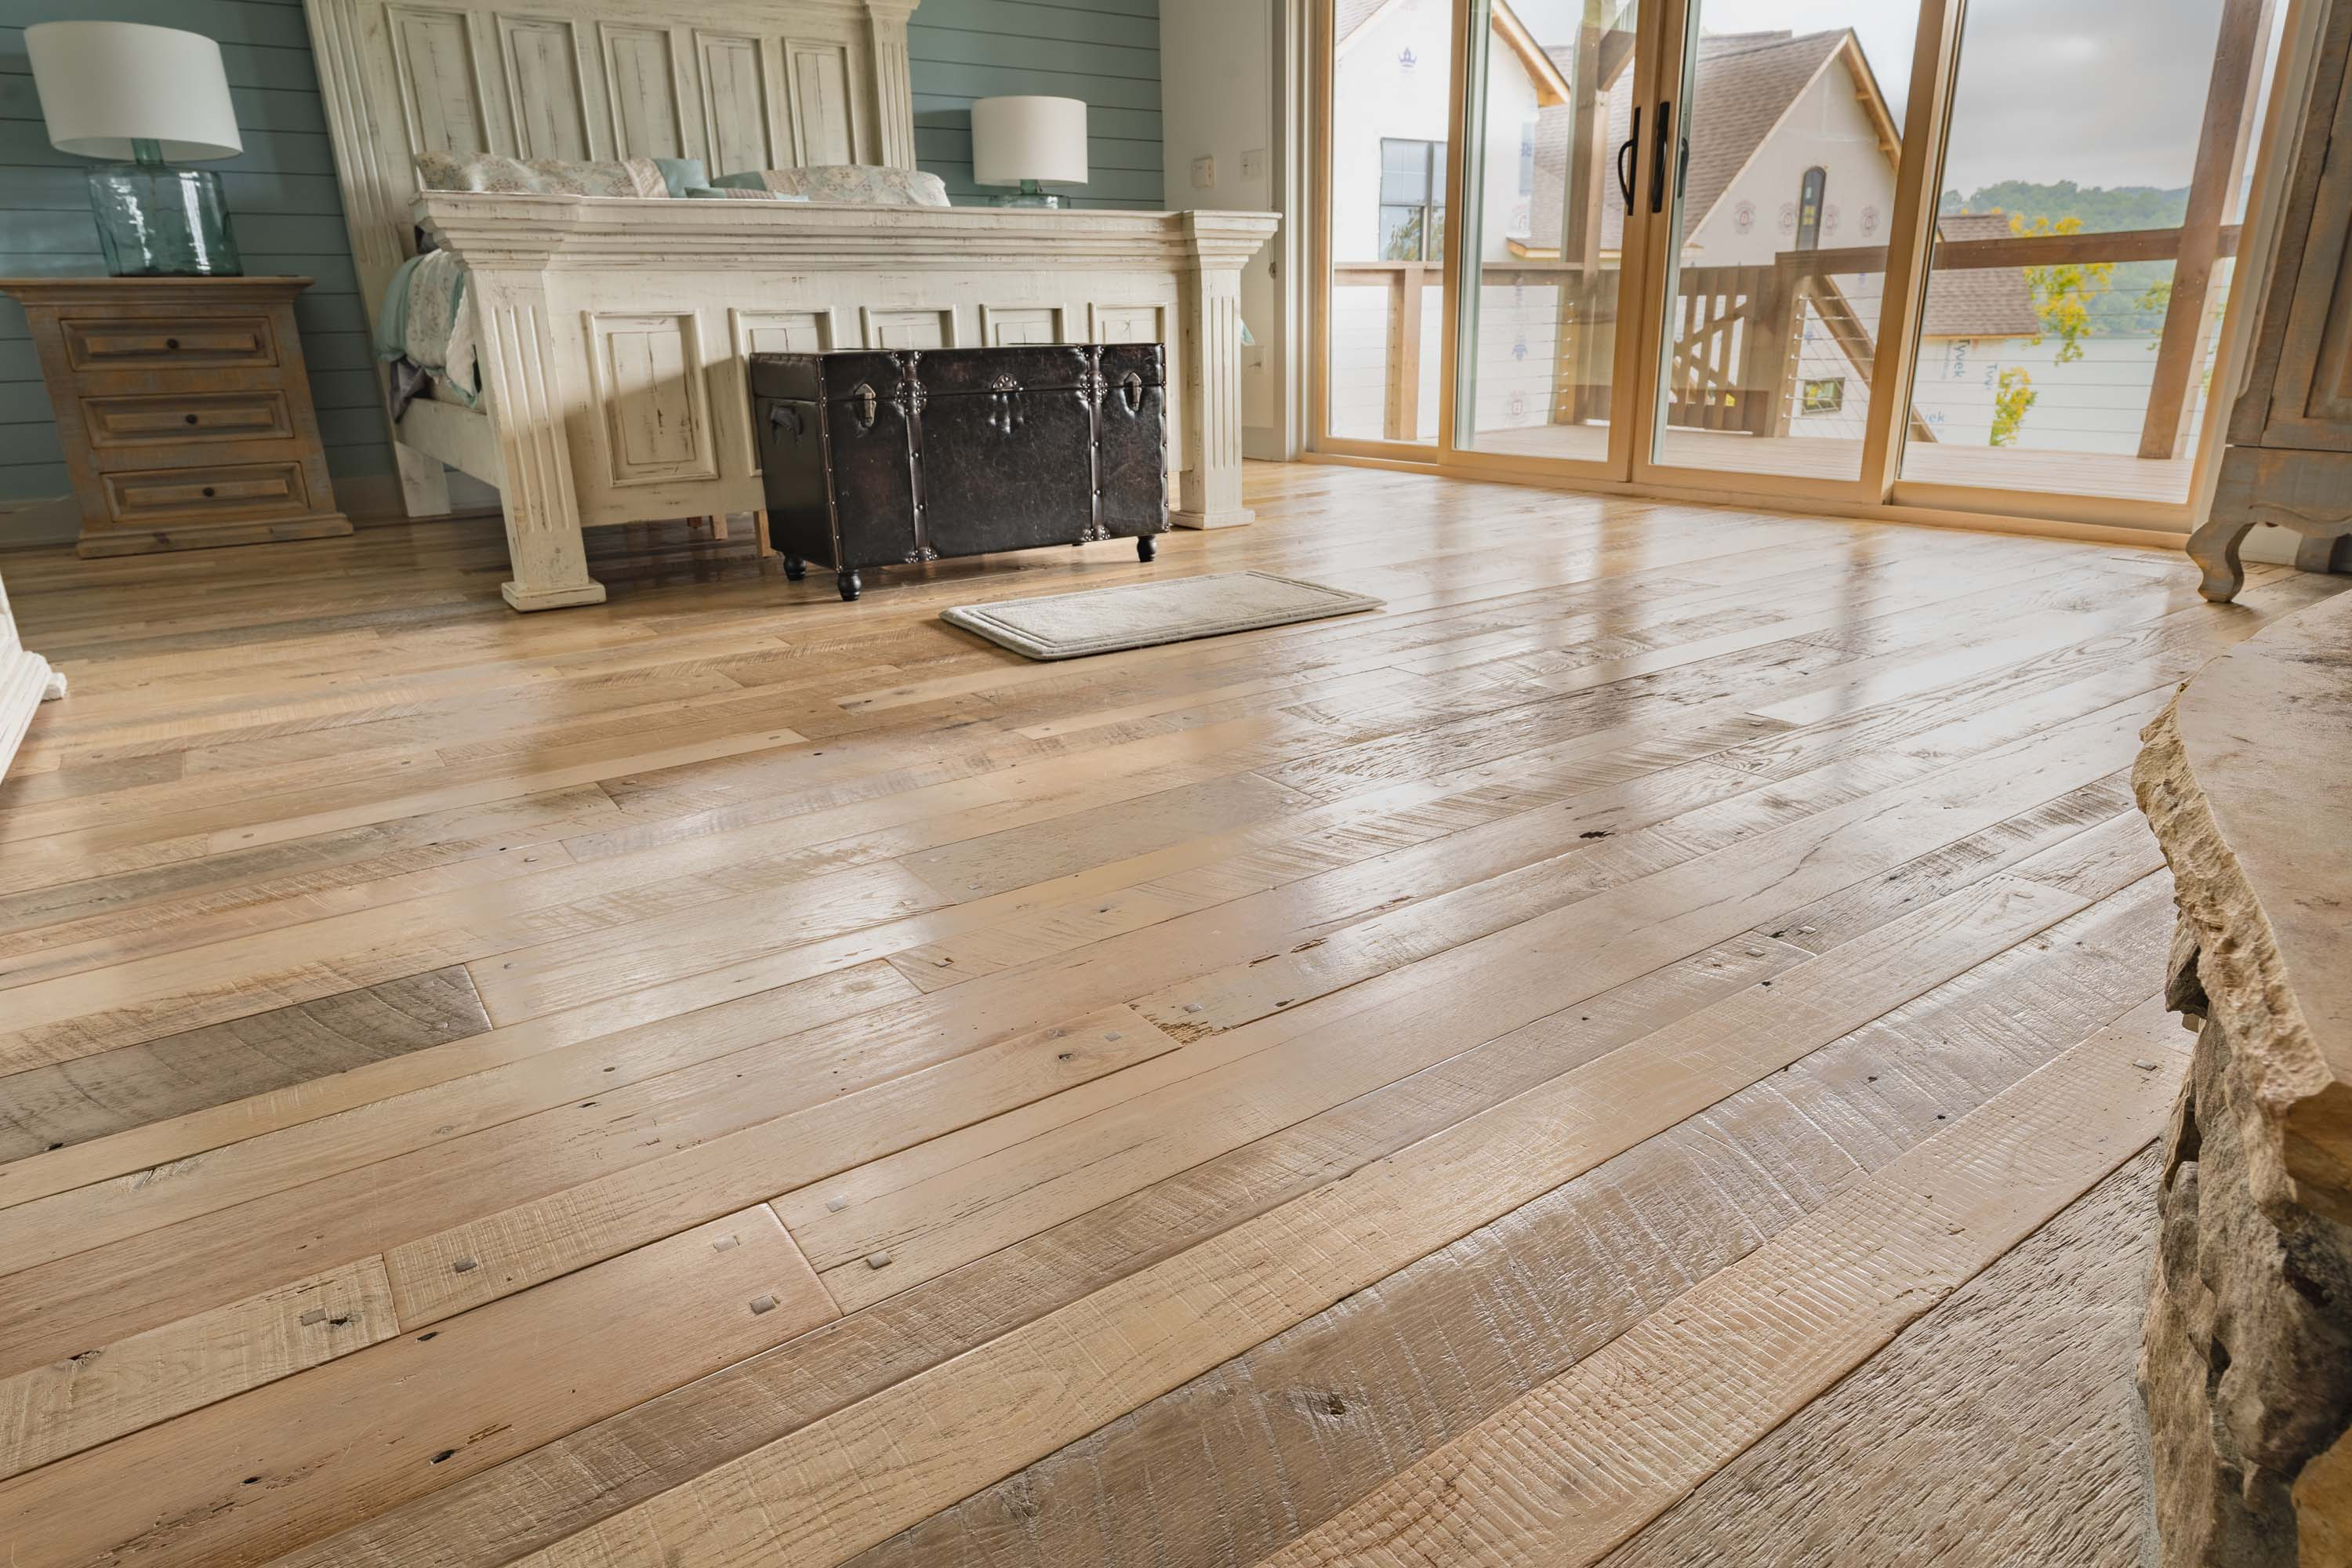 A bedroom with Nantucket Reclaimed Wood Flooring by Tennessee Wood Flooring. These floors are real hardwood floors made locally.